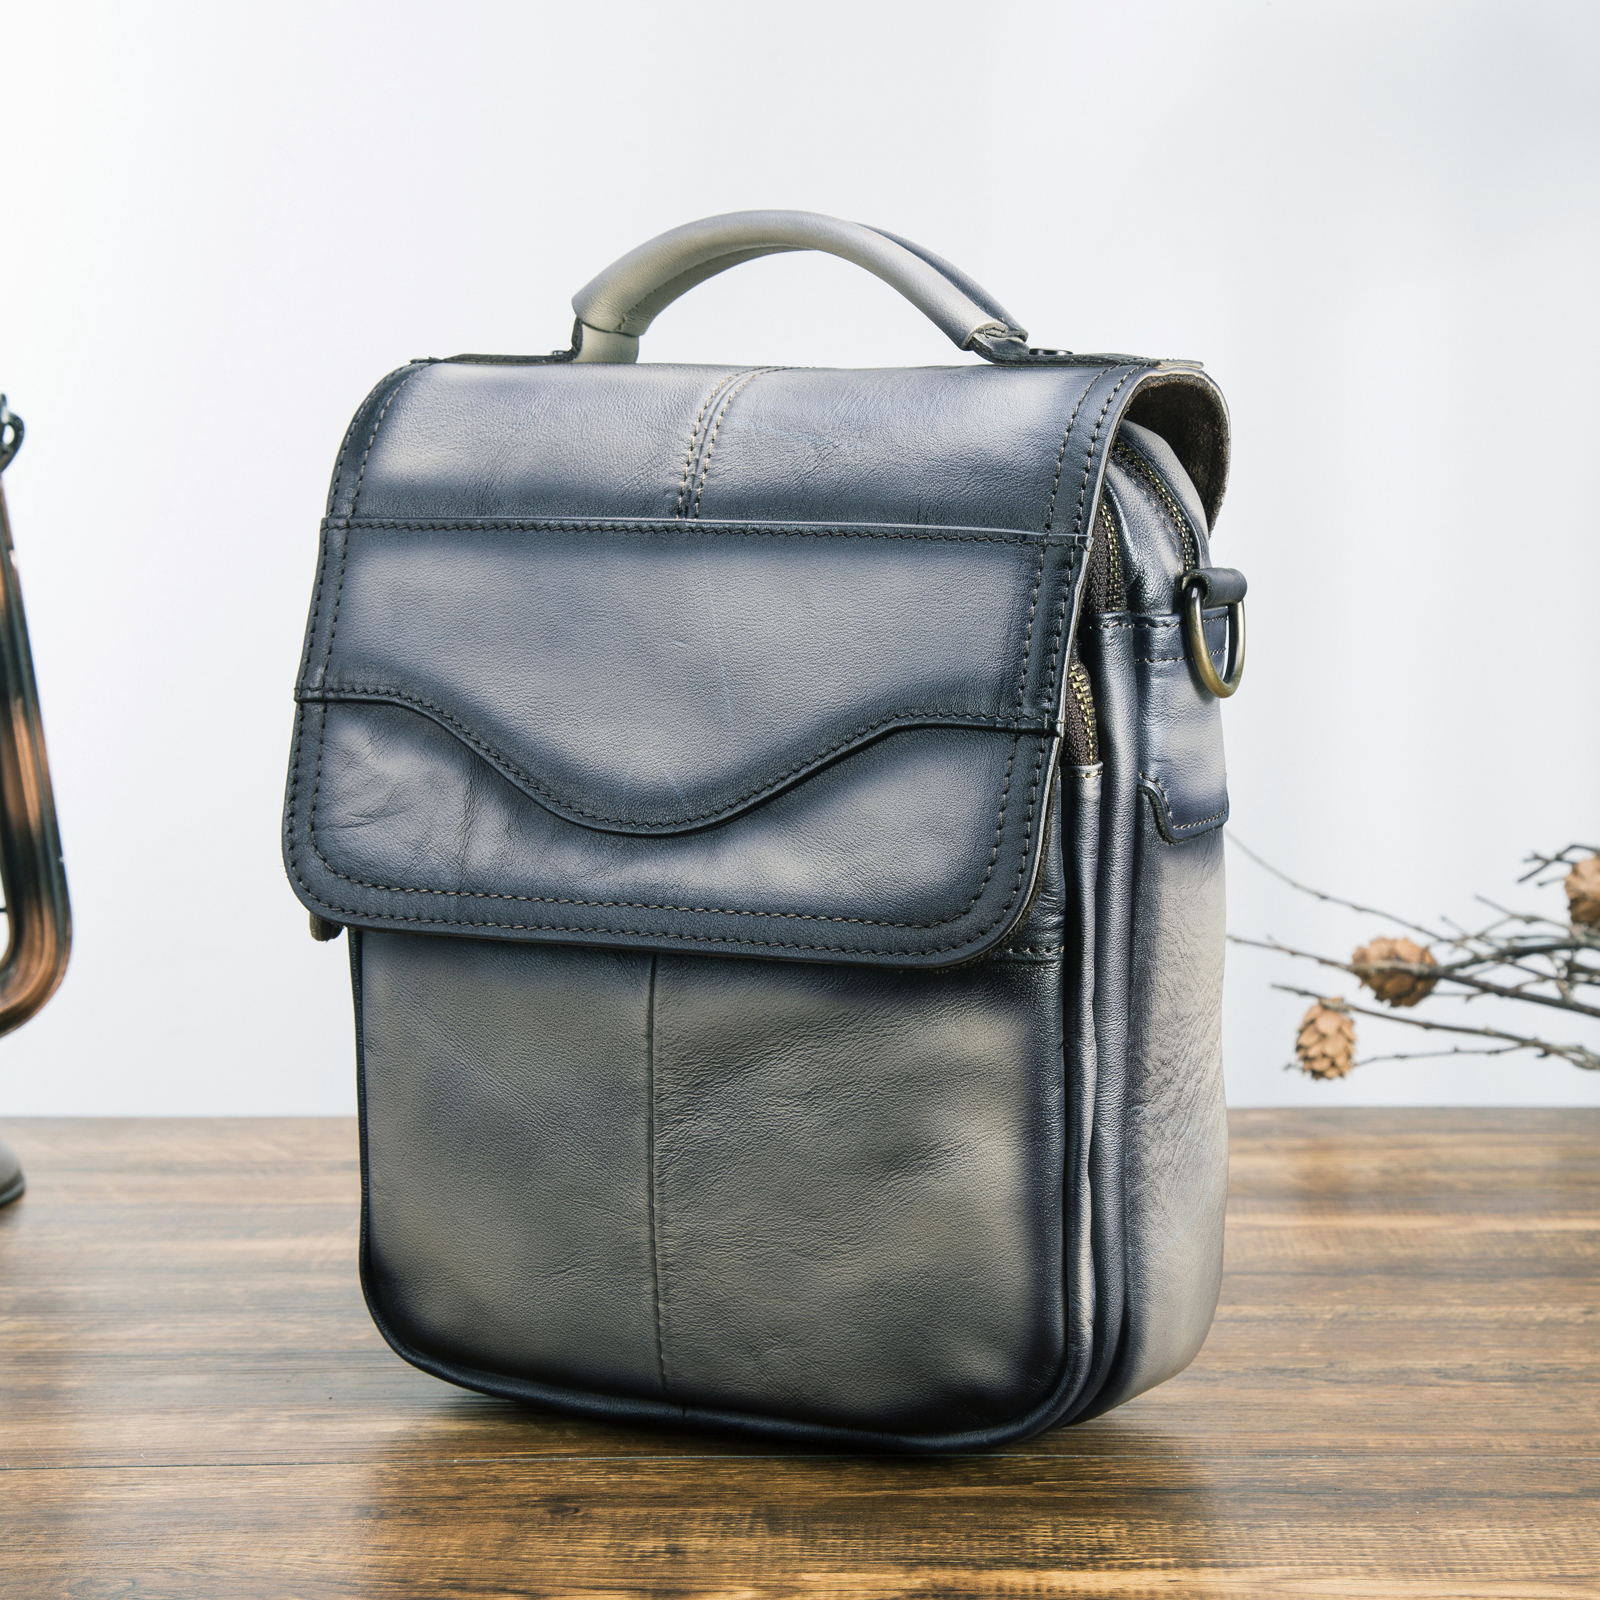 Originale In Pelle Maschile Casual di Scuola di Design di Spalla del Messaggero di Crossbody bag Fashion College Tablet Tote Libro Satchel bag 144drOriginale In Pelle Maschile Casual di Scuola di Design di Spalla del Messaggero di Crossbody bag Fashion College Tablet Tote Libro Satchel bag 144dr